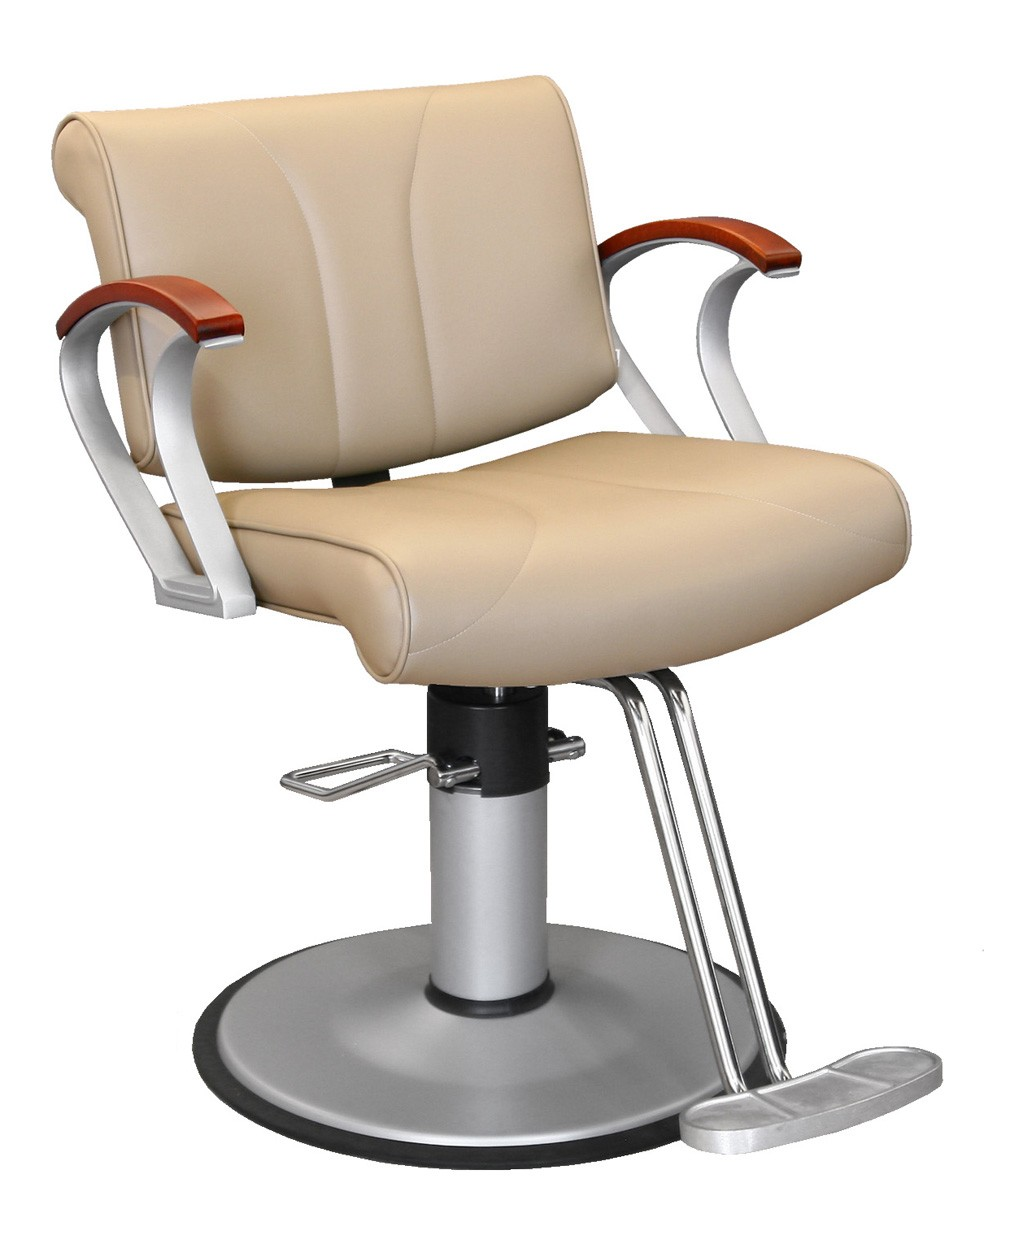 8111V Chelsea BA All Purpose Chair with Enviro Base